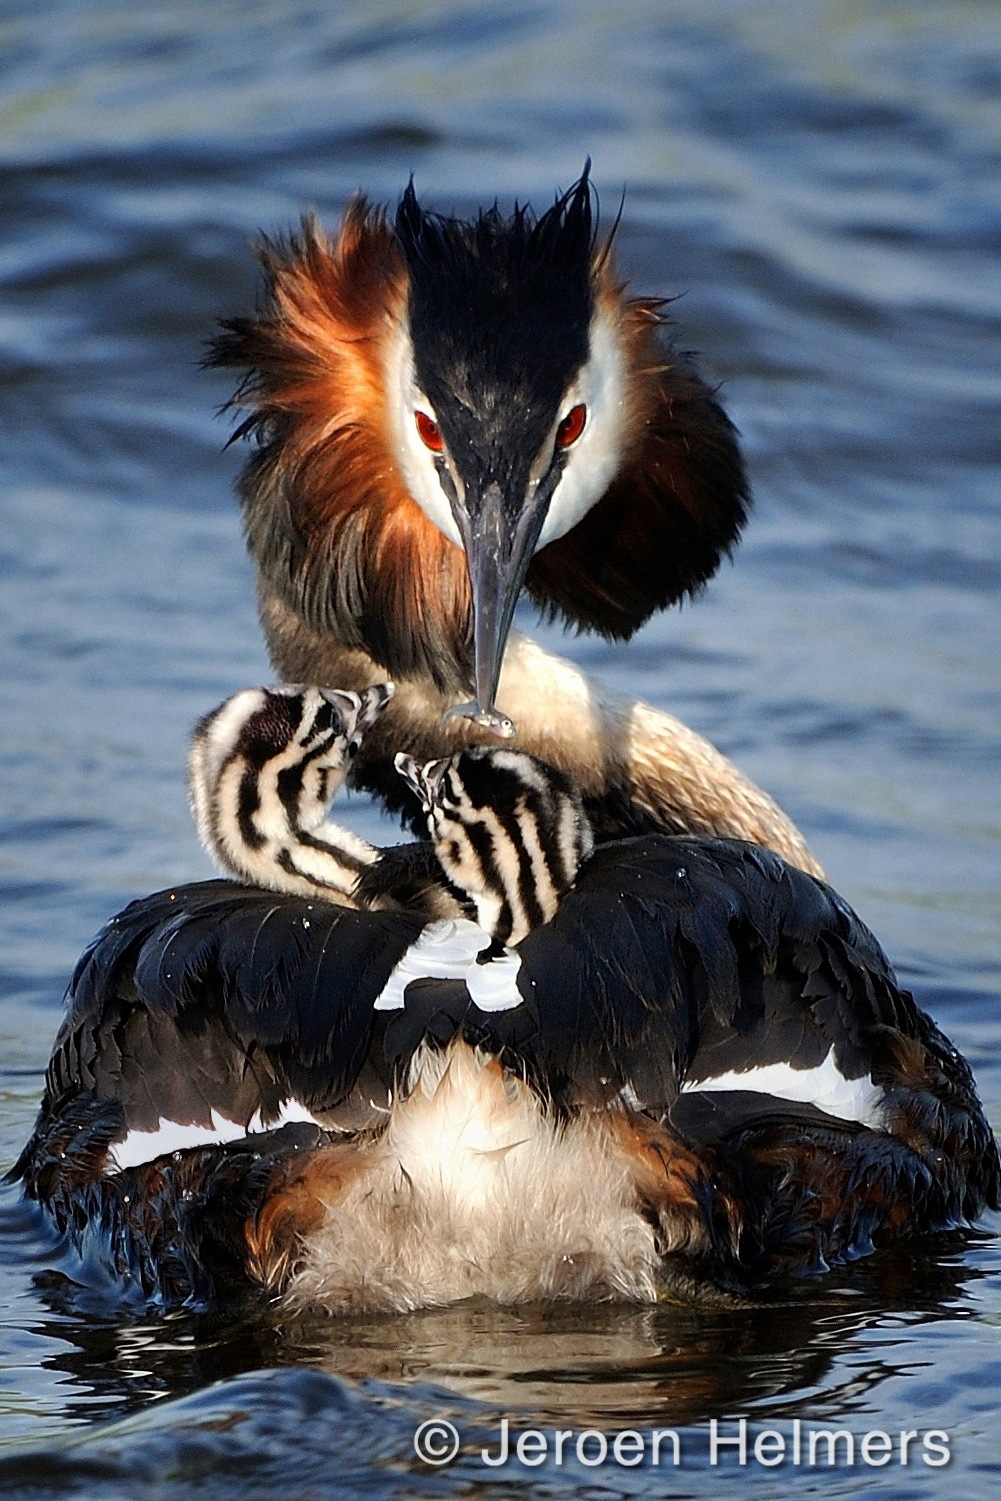 Great Crested Grebe, Podiceps Cristatus, Fuut by Jeroen Helmers